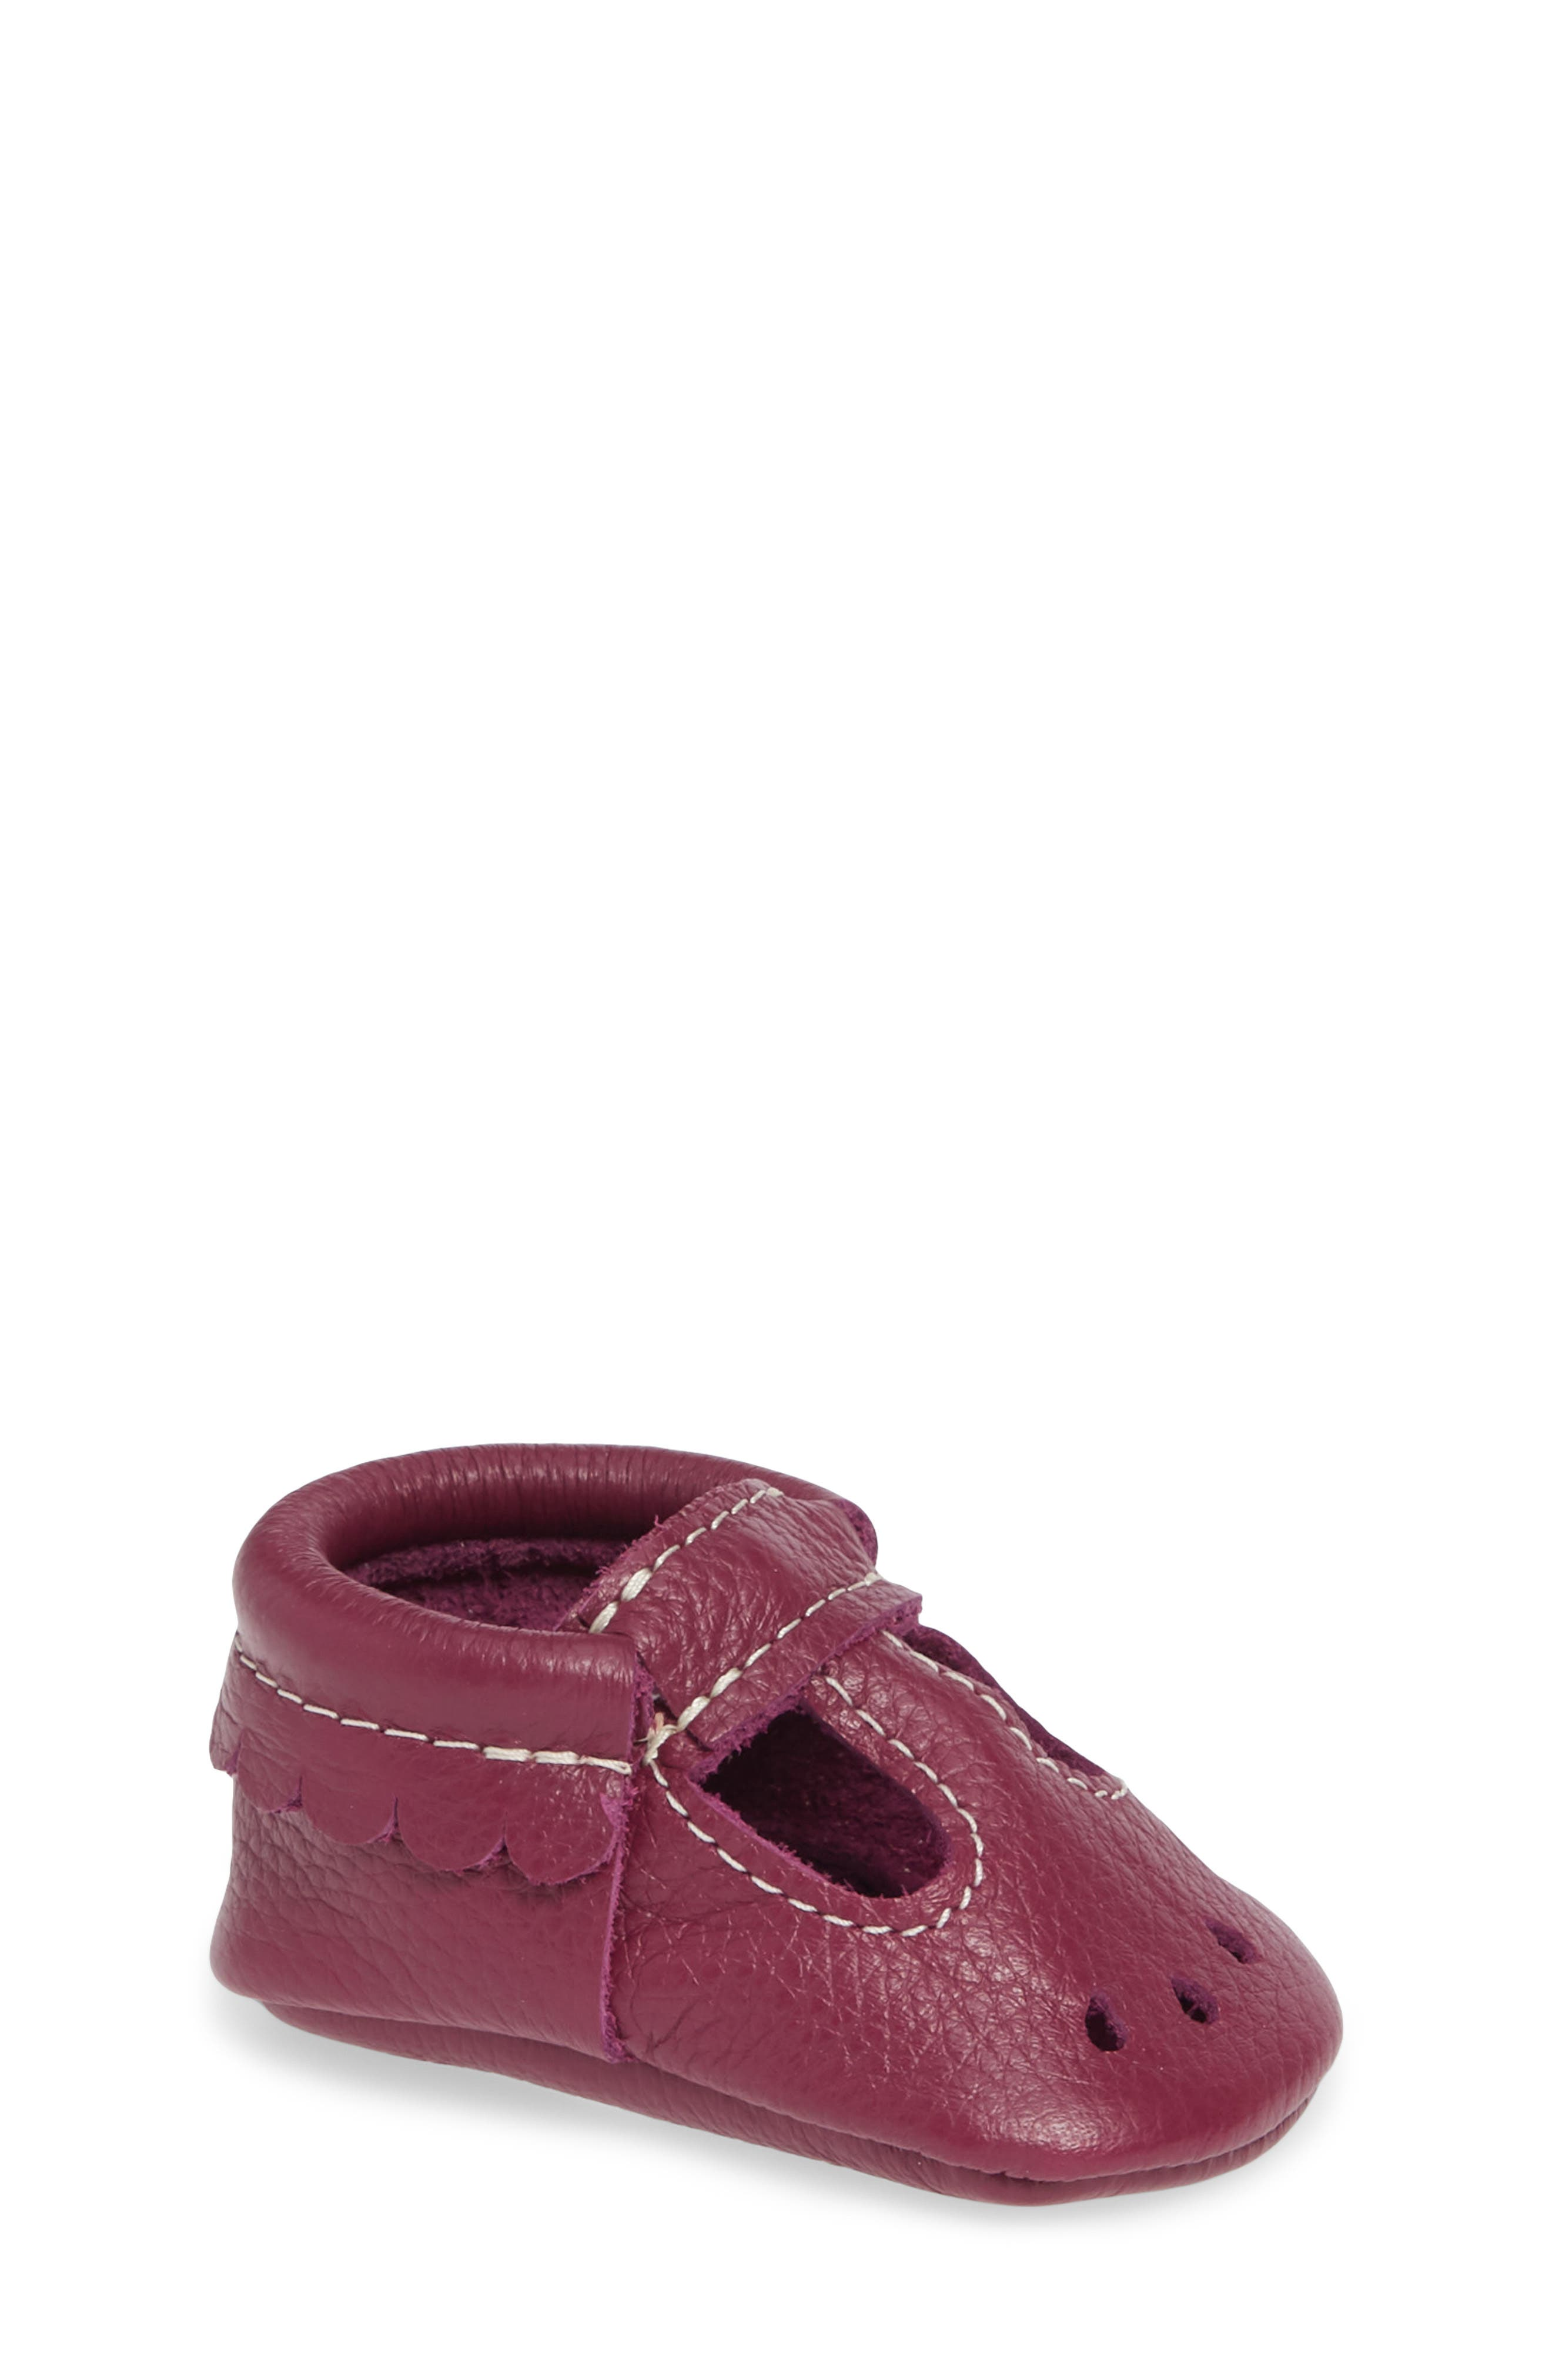 2fe3e786e61cf8 Toddler Girls Freshly Picked Perforated Mary Jane Moccasin Size 5 M Purple